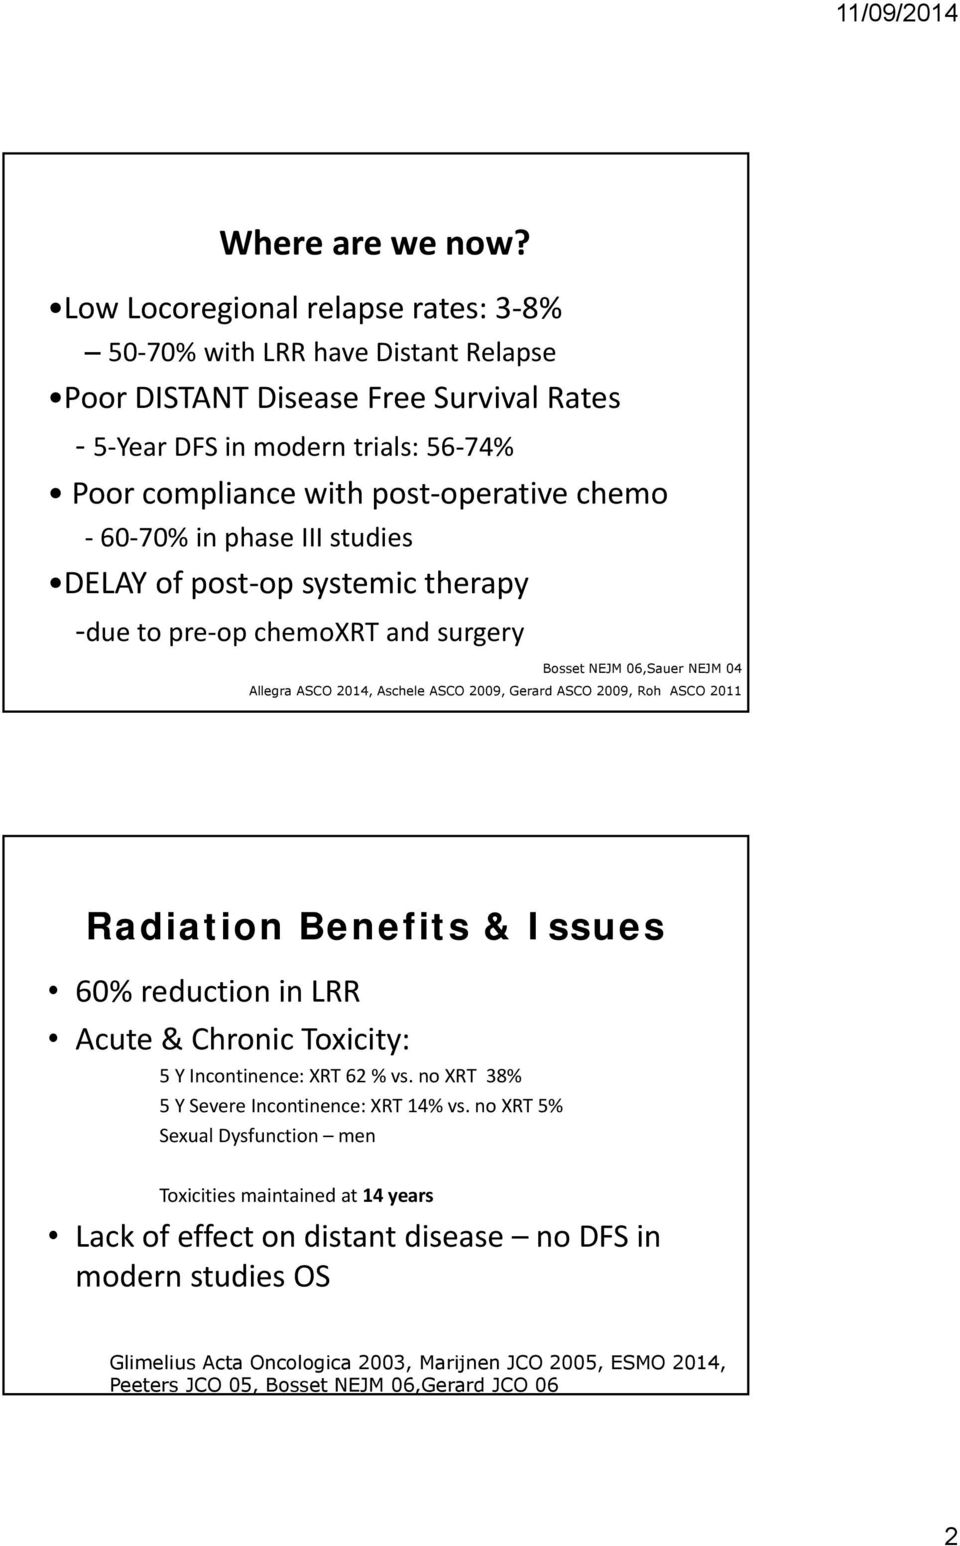 in phase III studies DELAY of post op systemic therapy due to pre op chemoxrt and surgery Bosset NEJM 06,Sauer NEJM 04 Allegra ASCO 2014, Aschele ASCO 2009, Gerard ASCO 2009, Roh ASCO 2011 Radiation